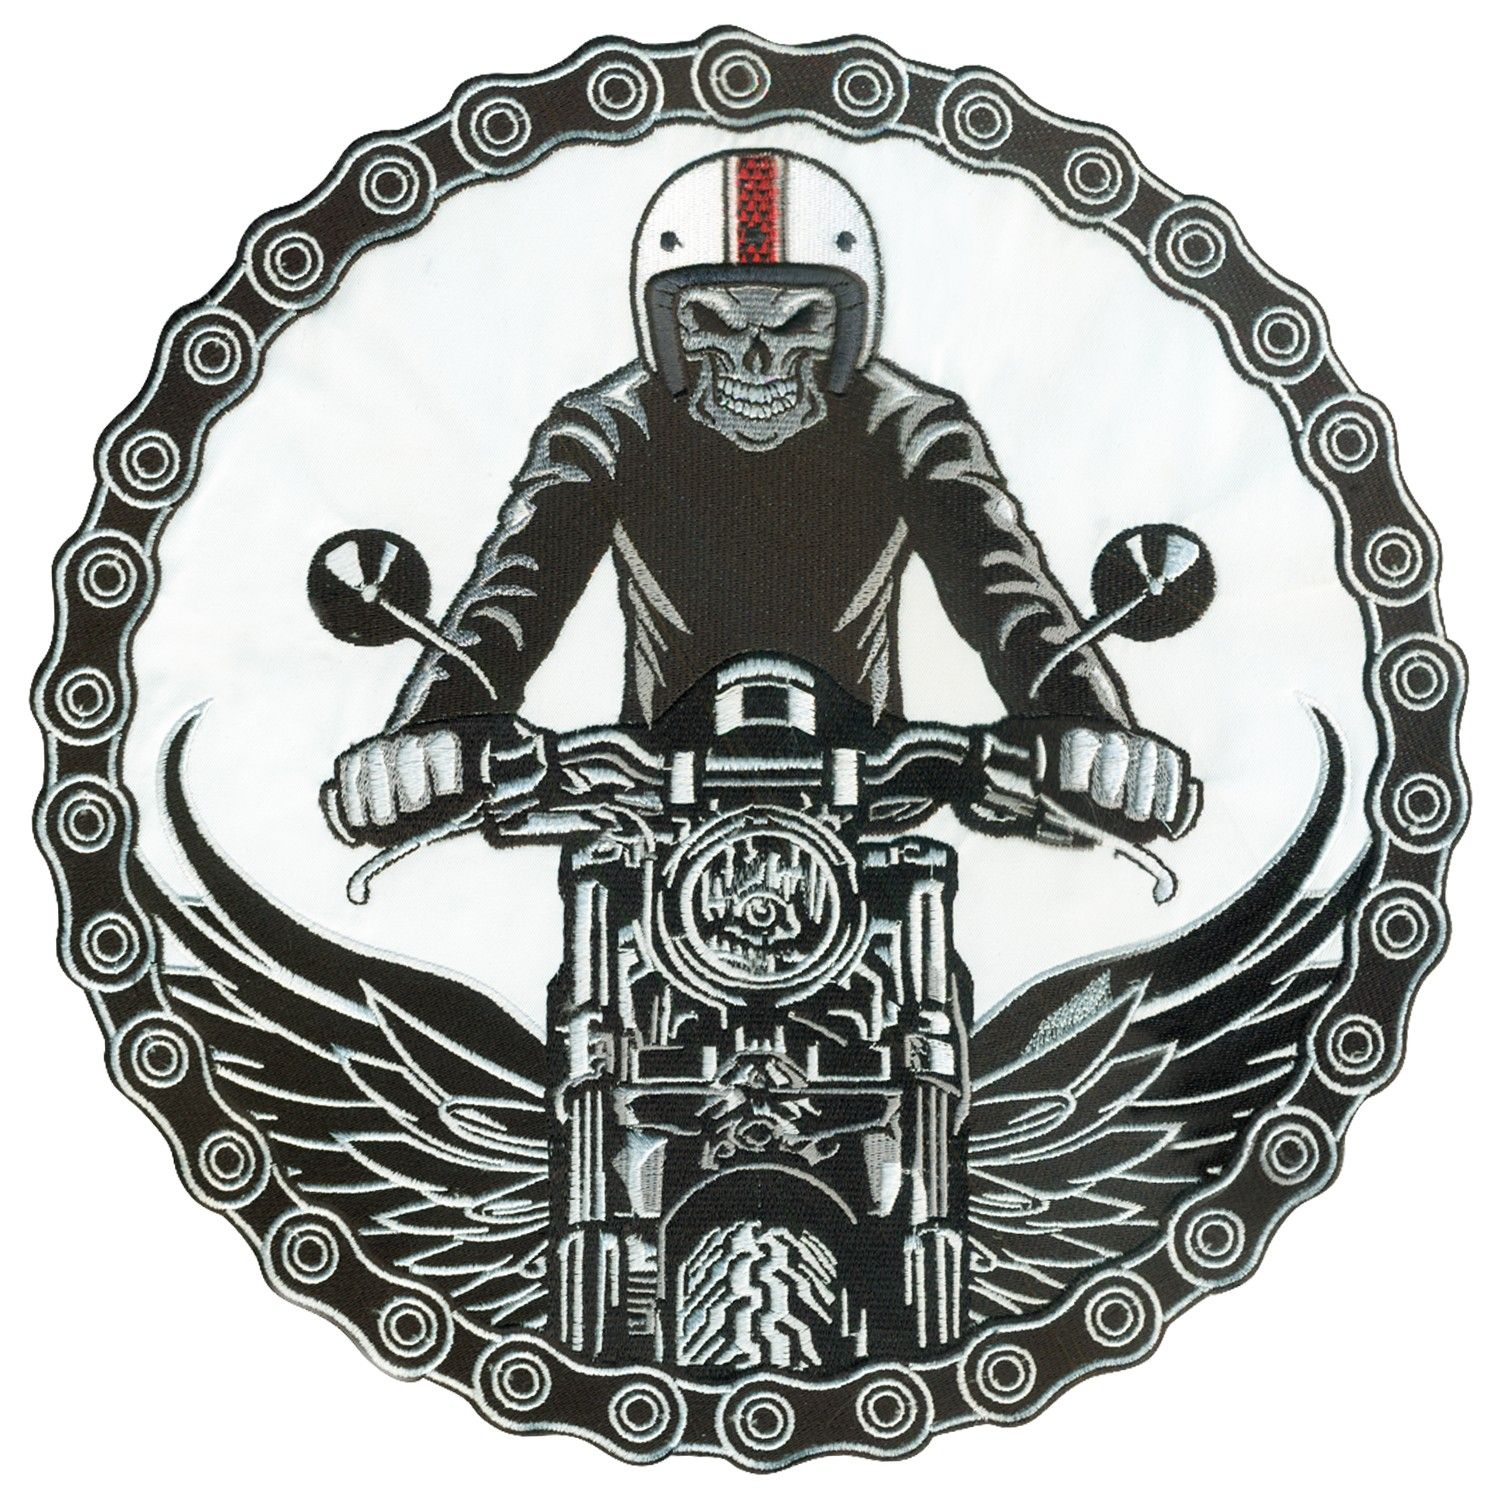 If you really want to know Iron on Small Patch for Motorcycle Biker Vest S